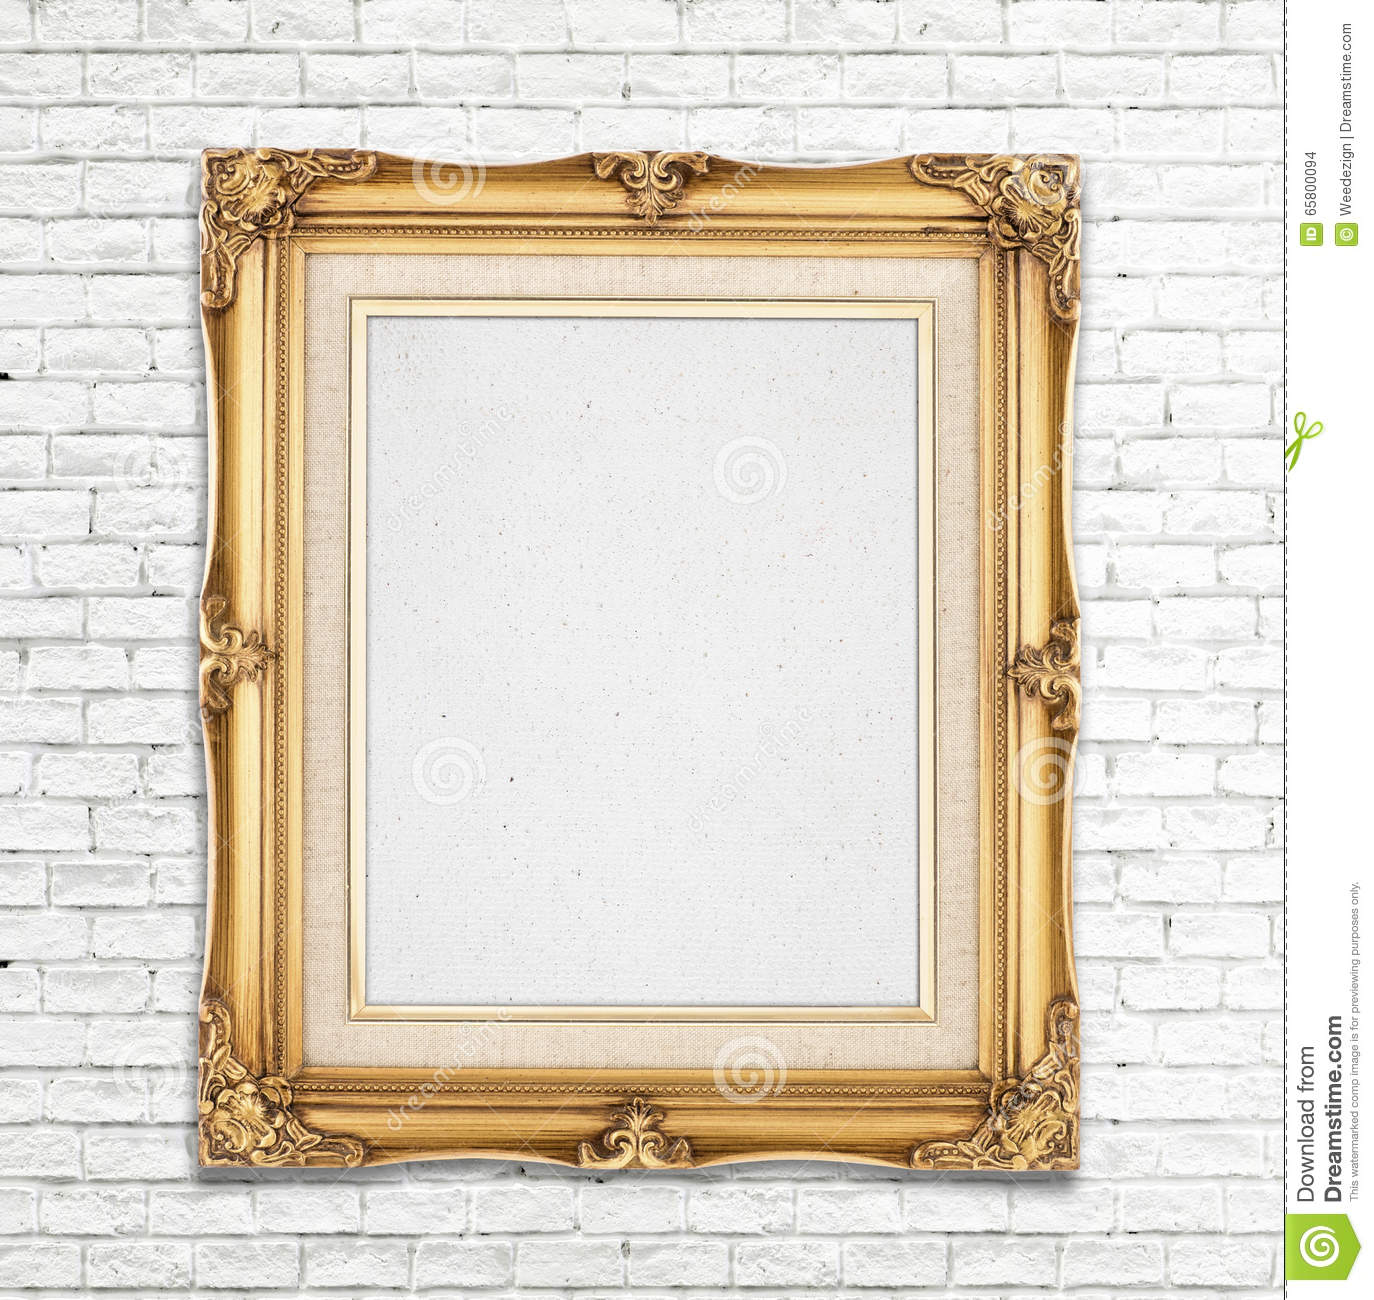 Blank Gold Vintage Photo Frame On White Brick Wall, Template For ...